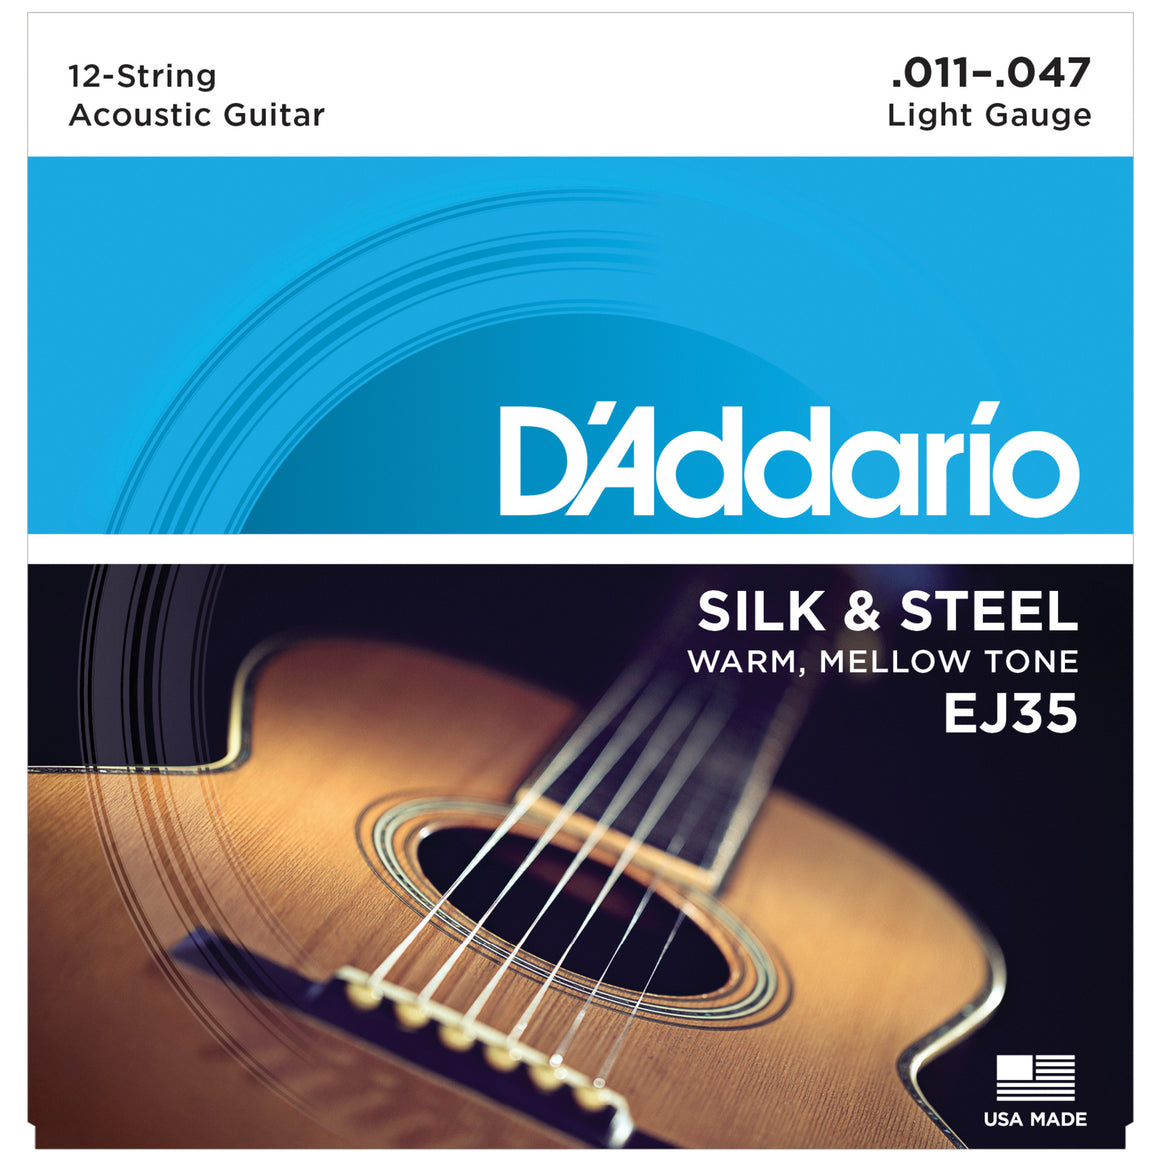 D'Addario EJ35 11-47 Silk & Steel 12-String Acoustic Guitar Strings